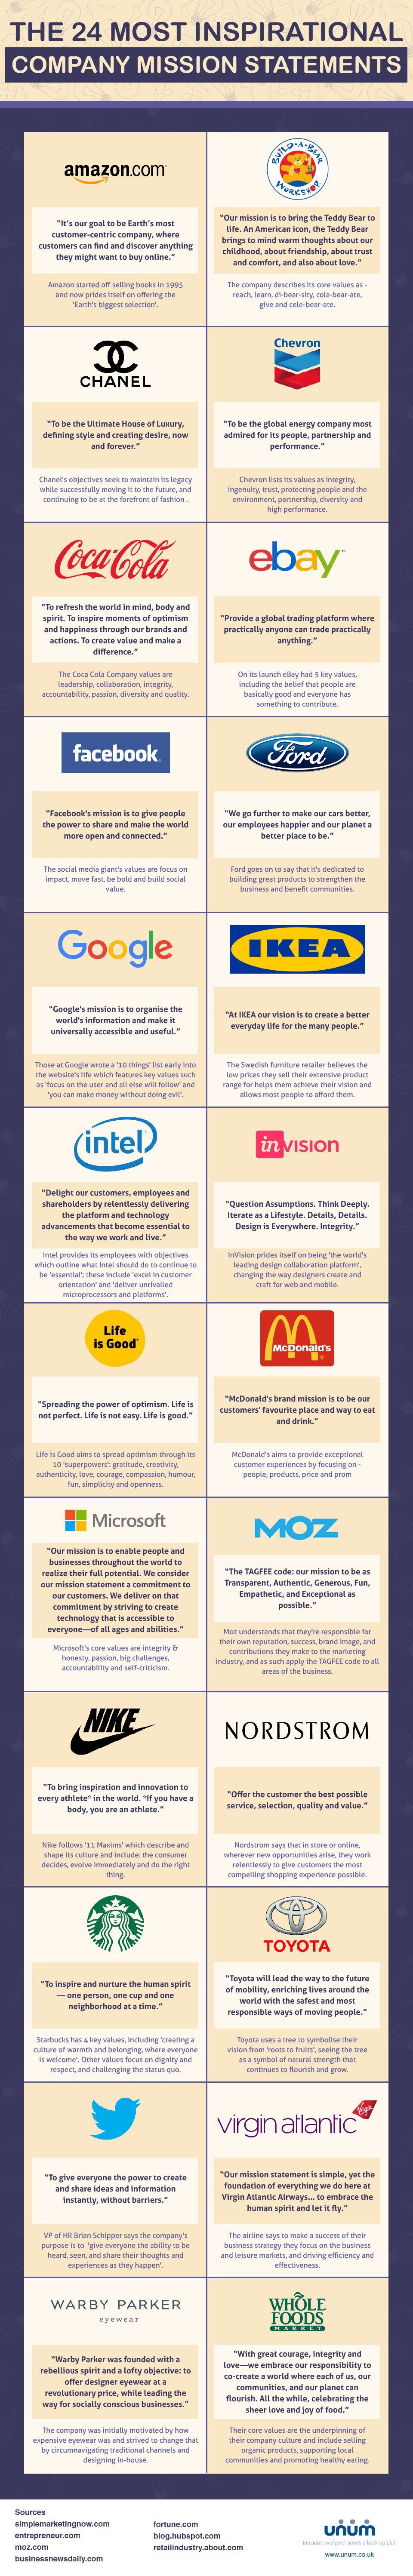 The 24 Most Inspirational Company Mission Statements